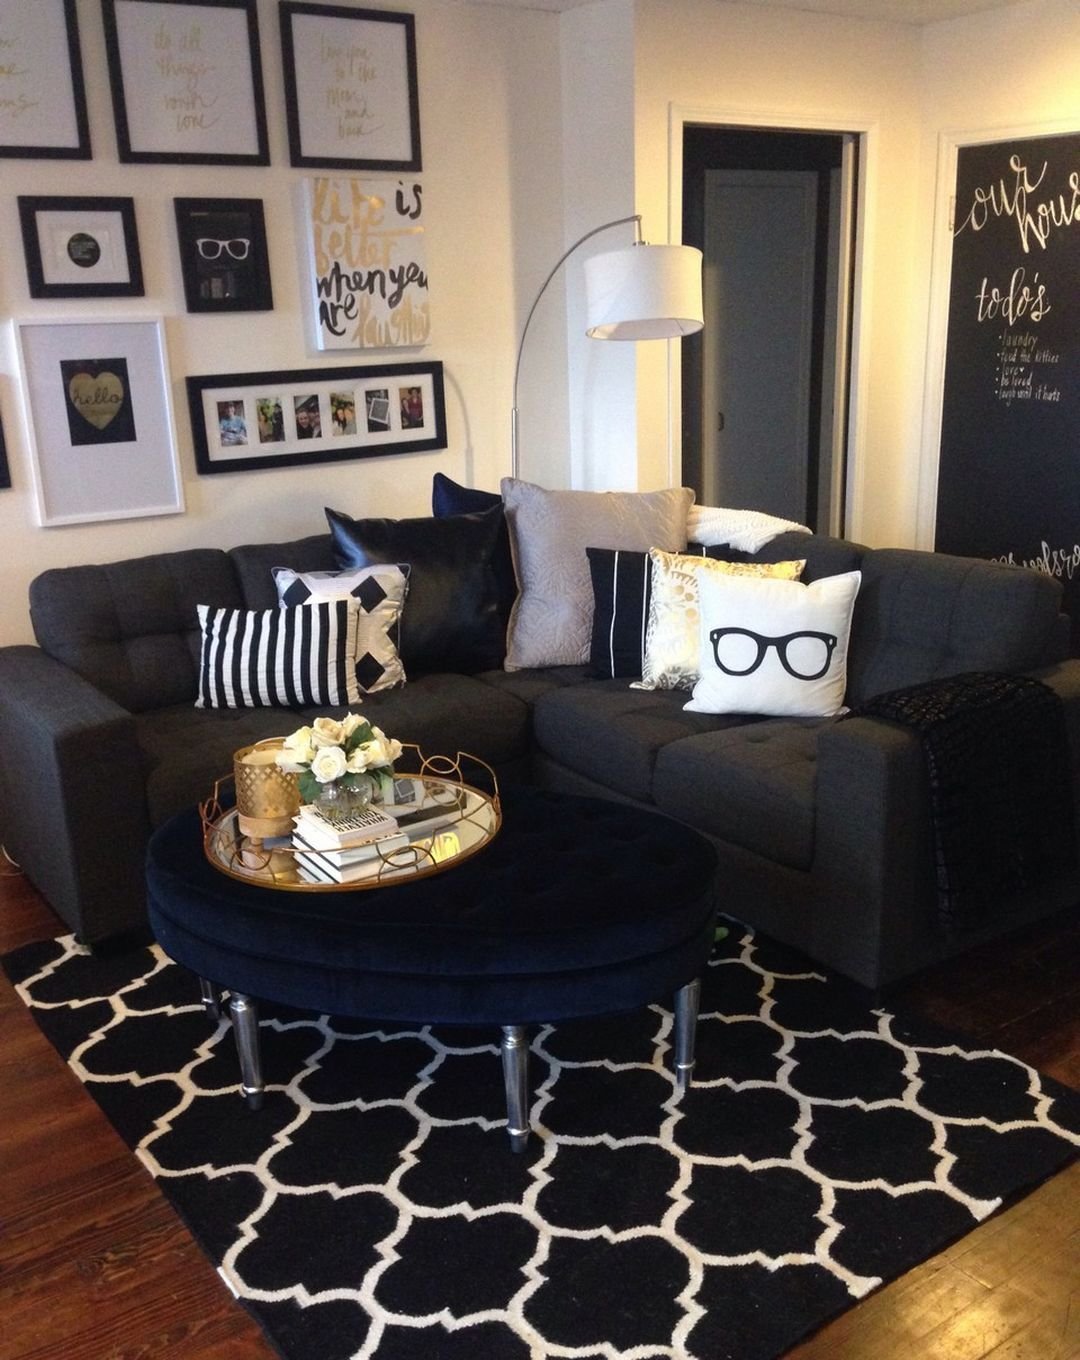 New Apartment Decorating Ideas On A Budget 19 In 2019